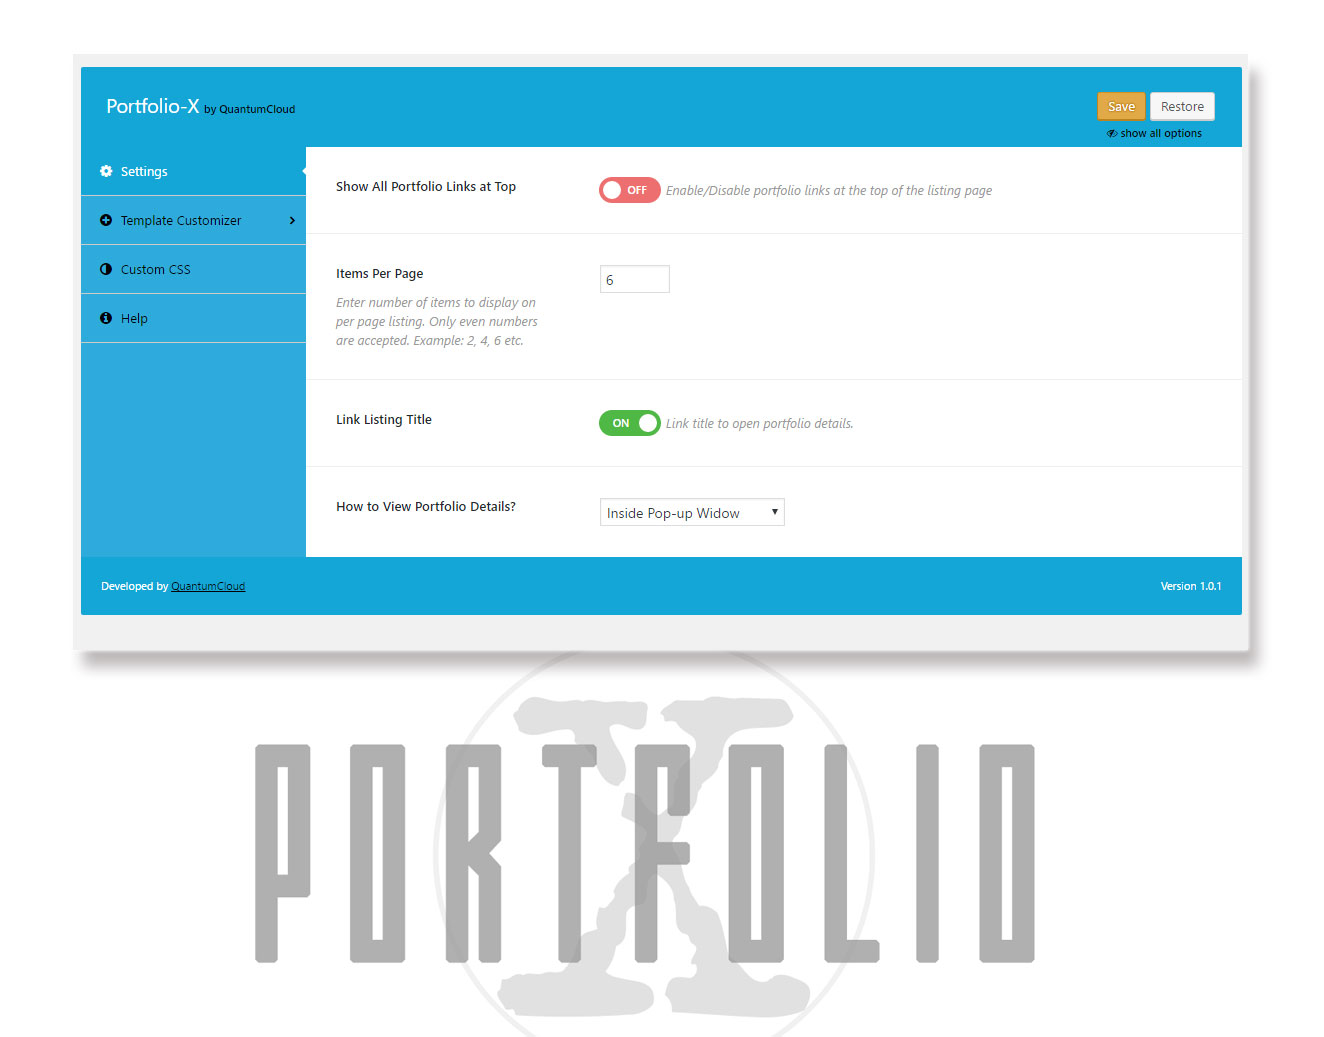 portfolio-x screenshot 8